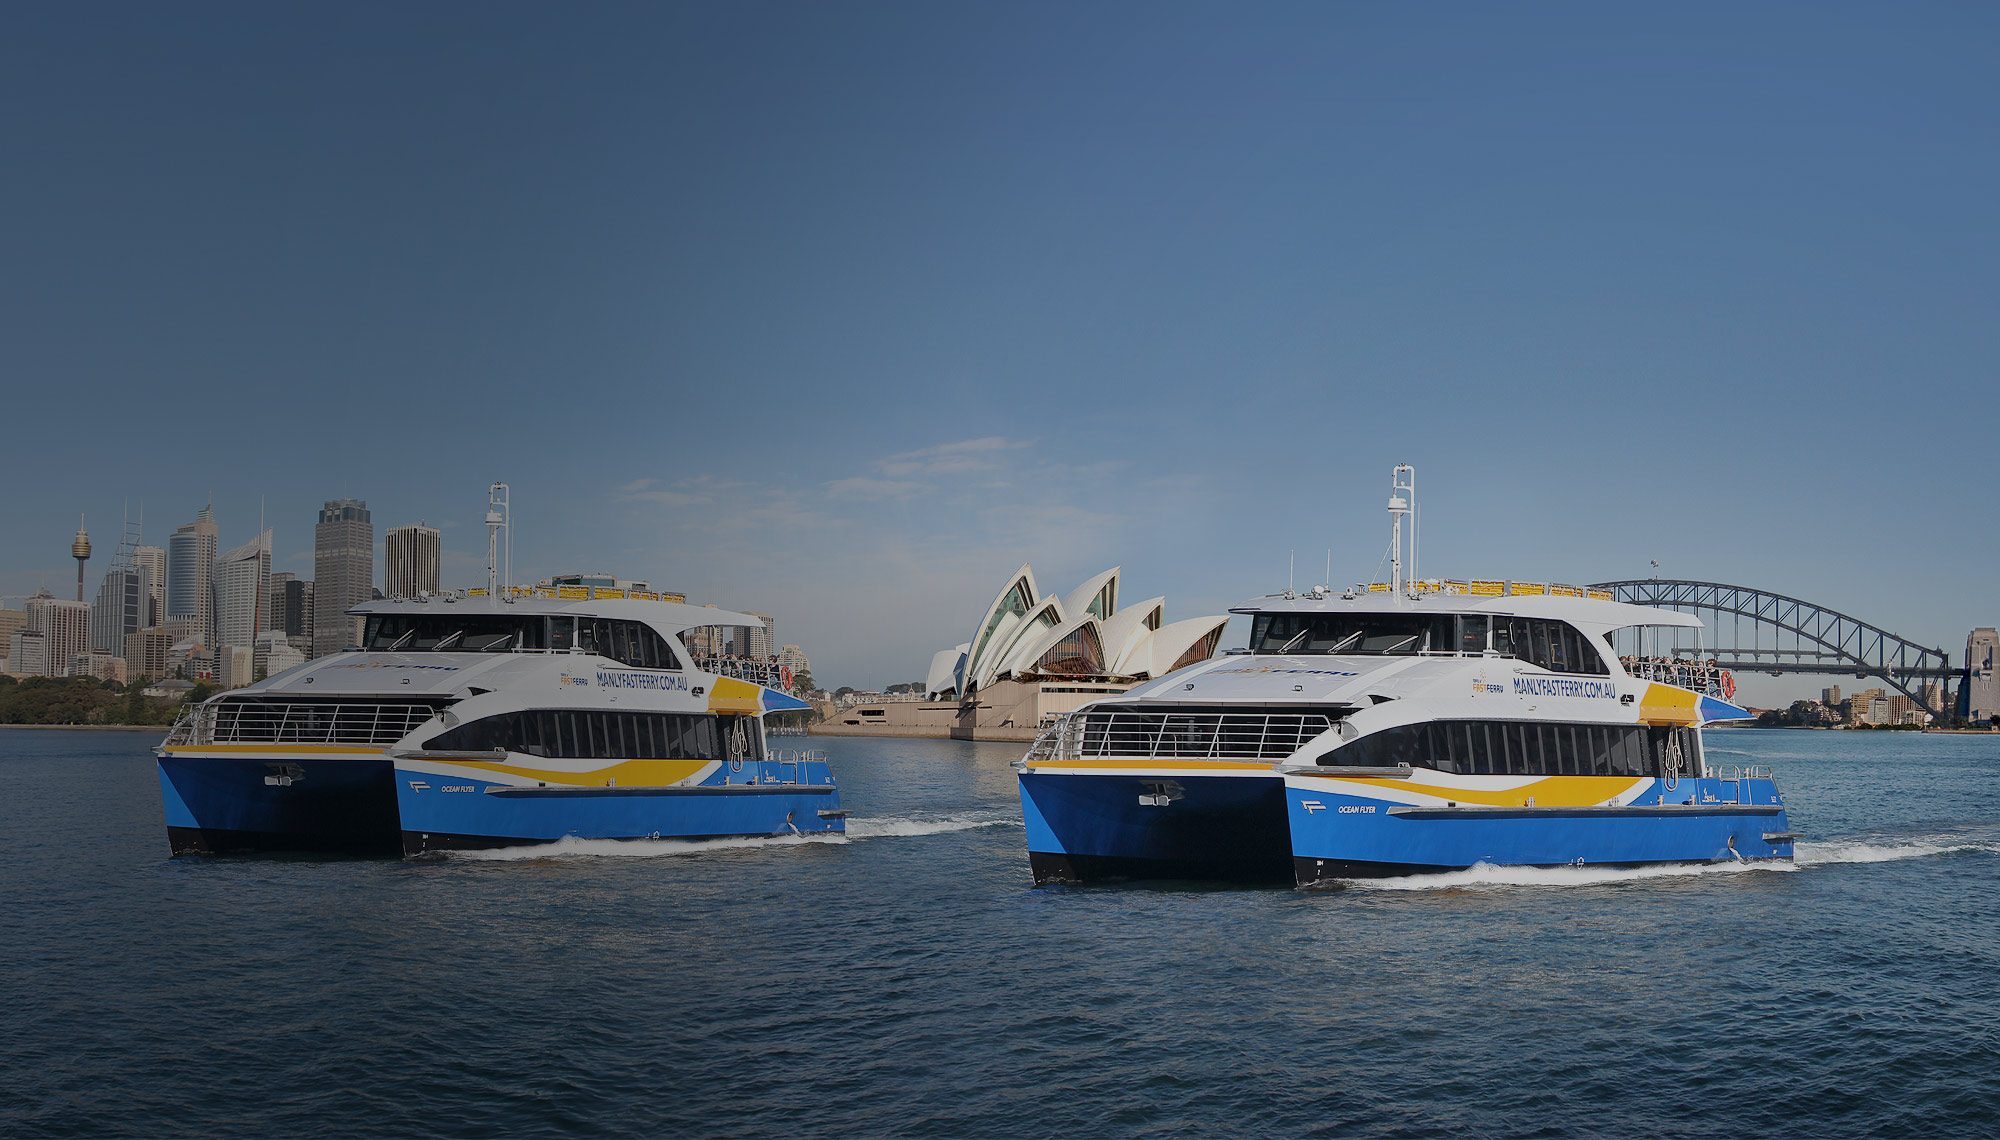 Manly Fast Ferry, Opal Pay